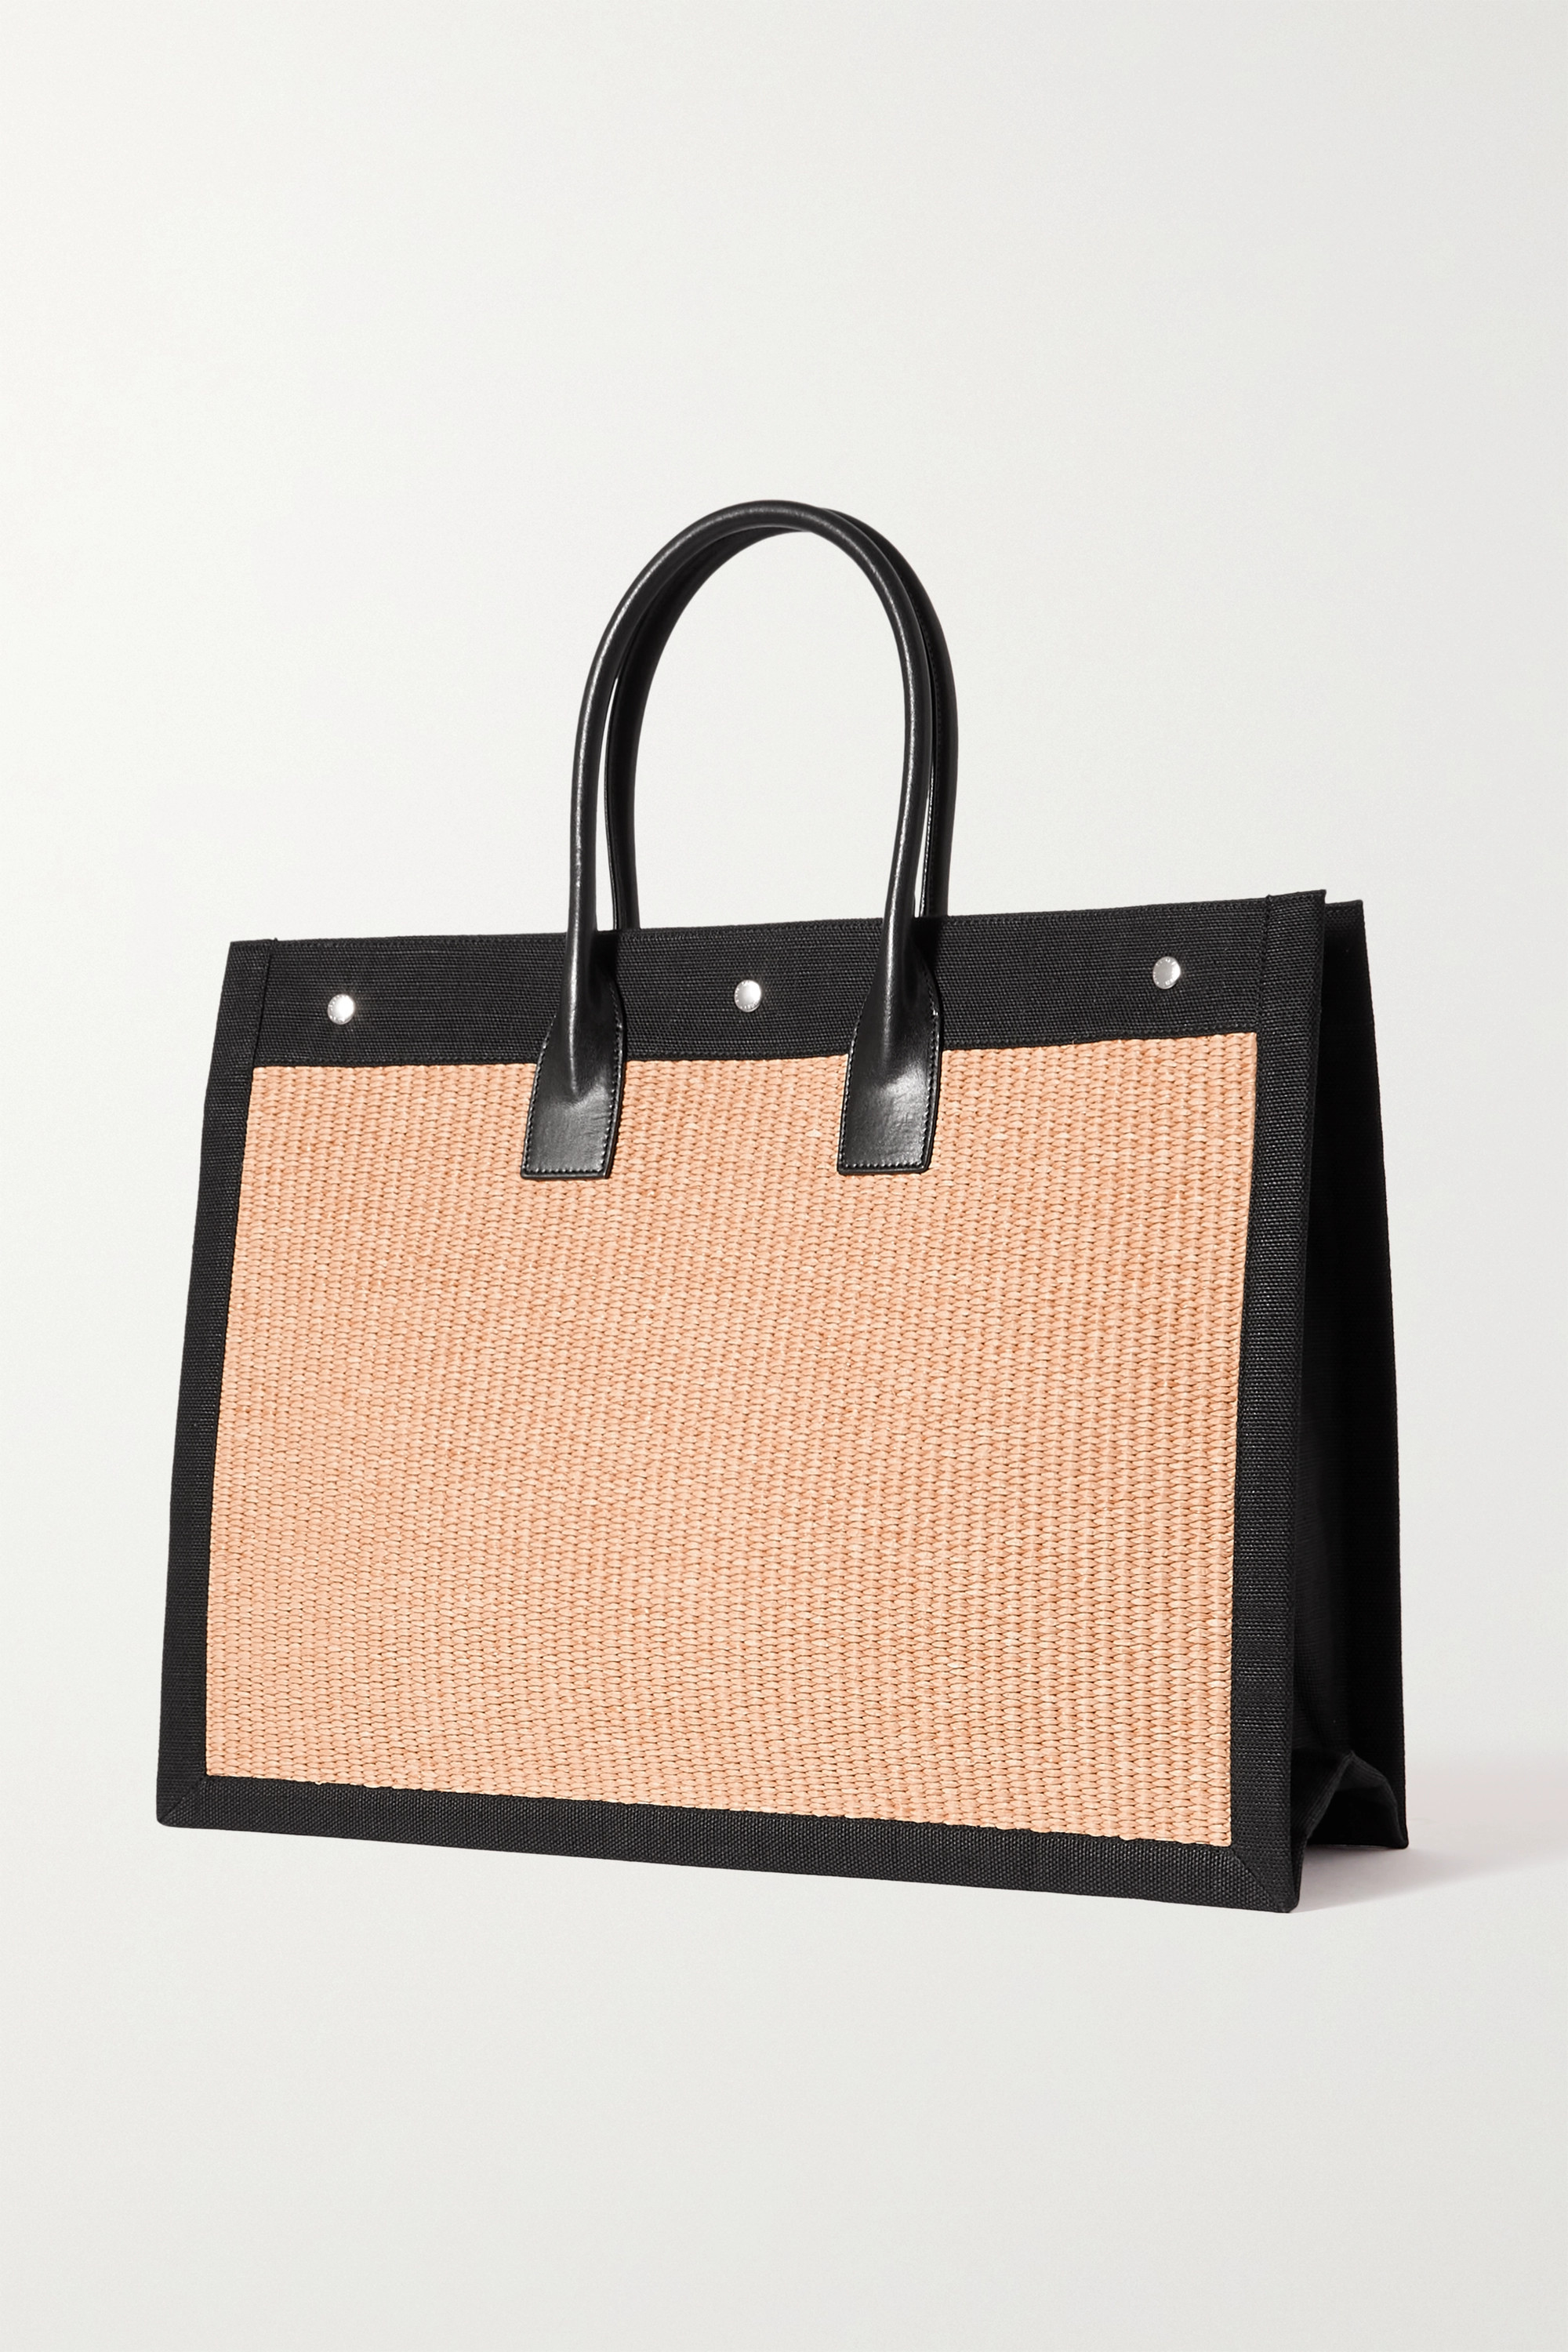 SAINT LAURENT Noe leather-trimmed embroidered faux straw and canvas tote